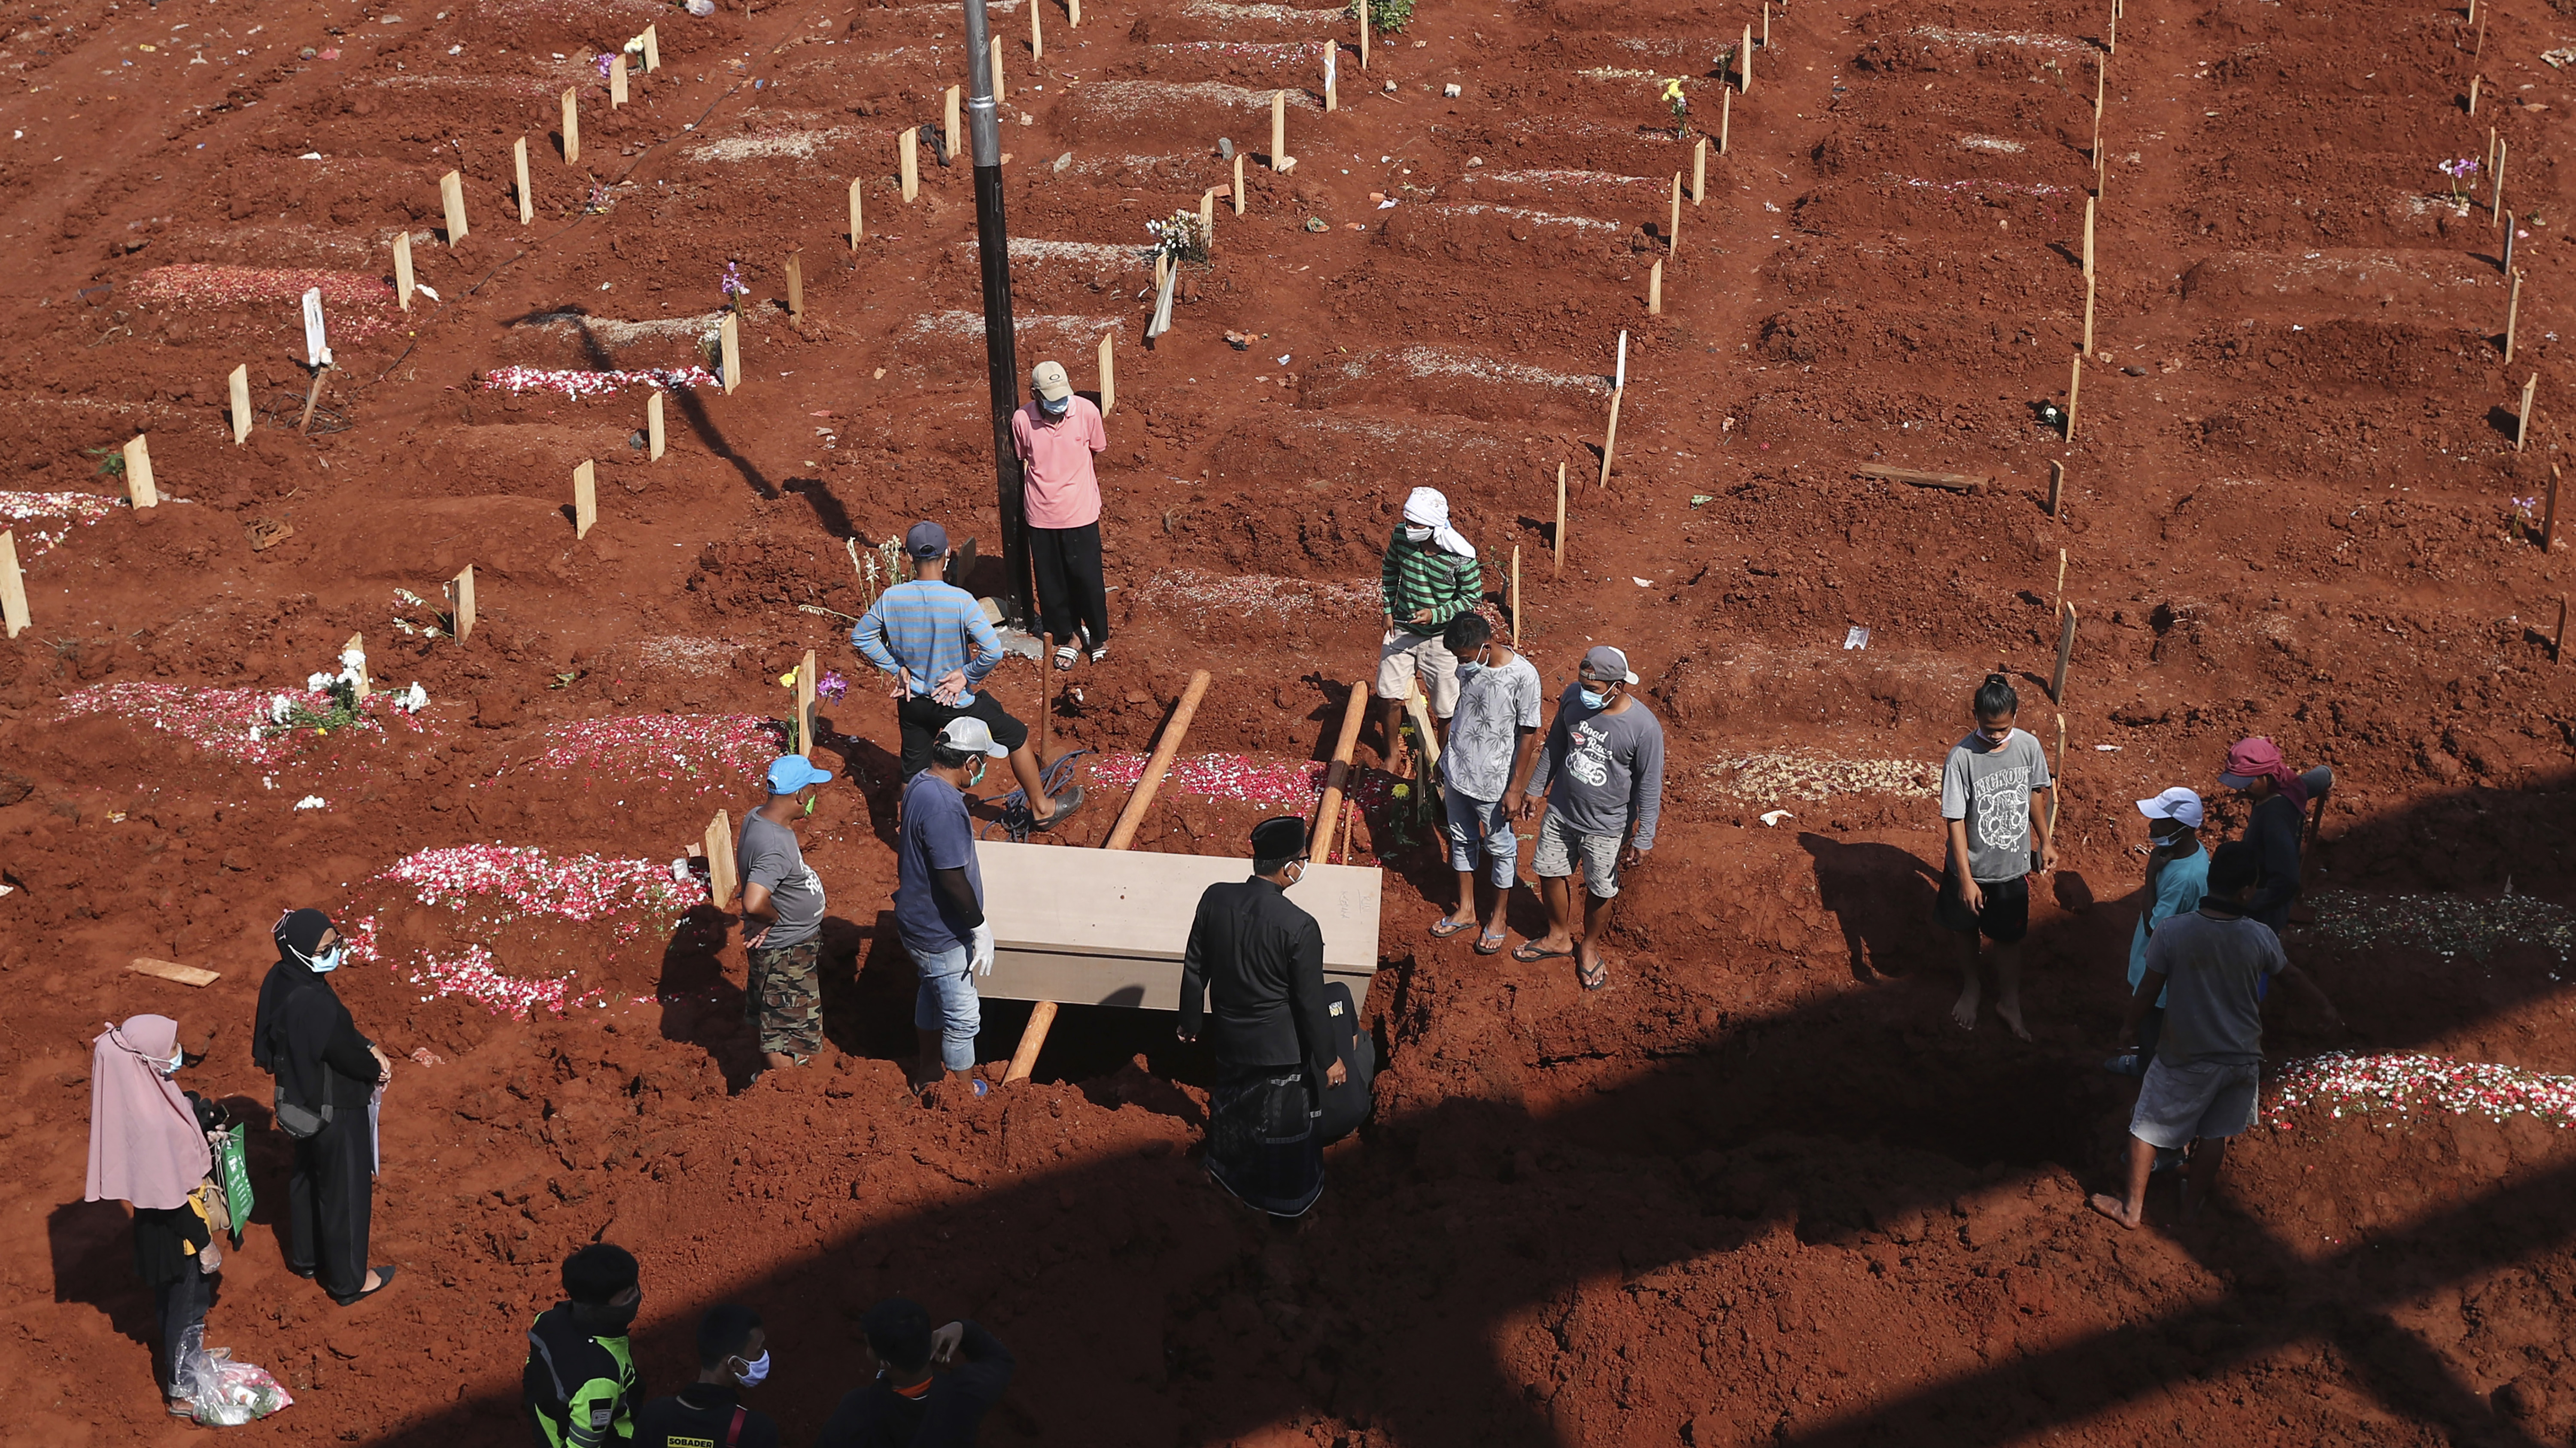 Workers prepare a coffin for burial at the special section of Jombang Public Cemetery reserved for those who died of COVID-19, in Tangerang, on the outskirts of Jakarta, Indonesia.